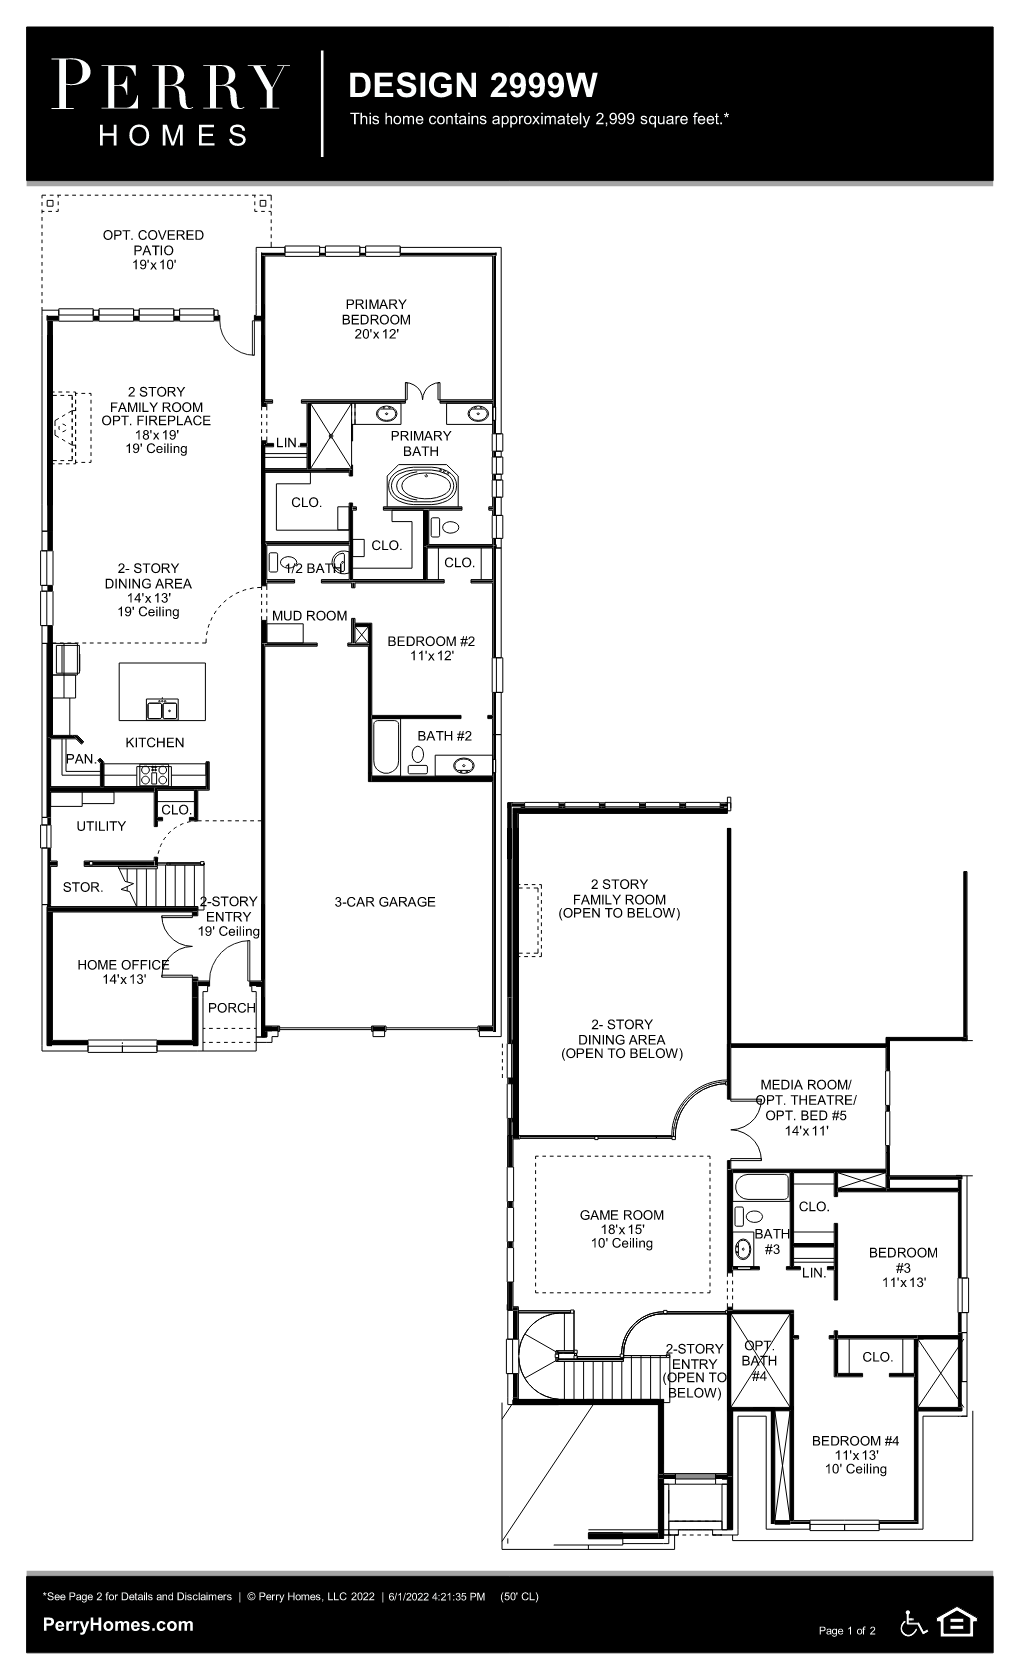 Floor Plan for 2999W